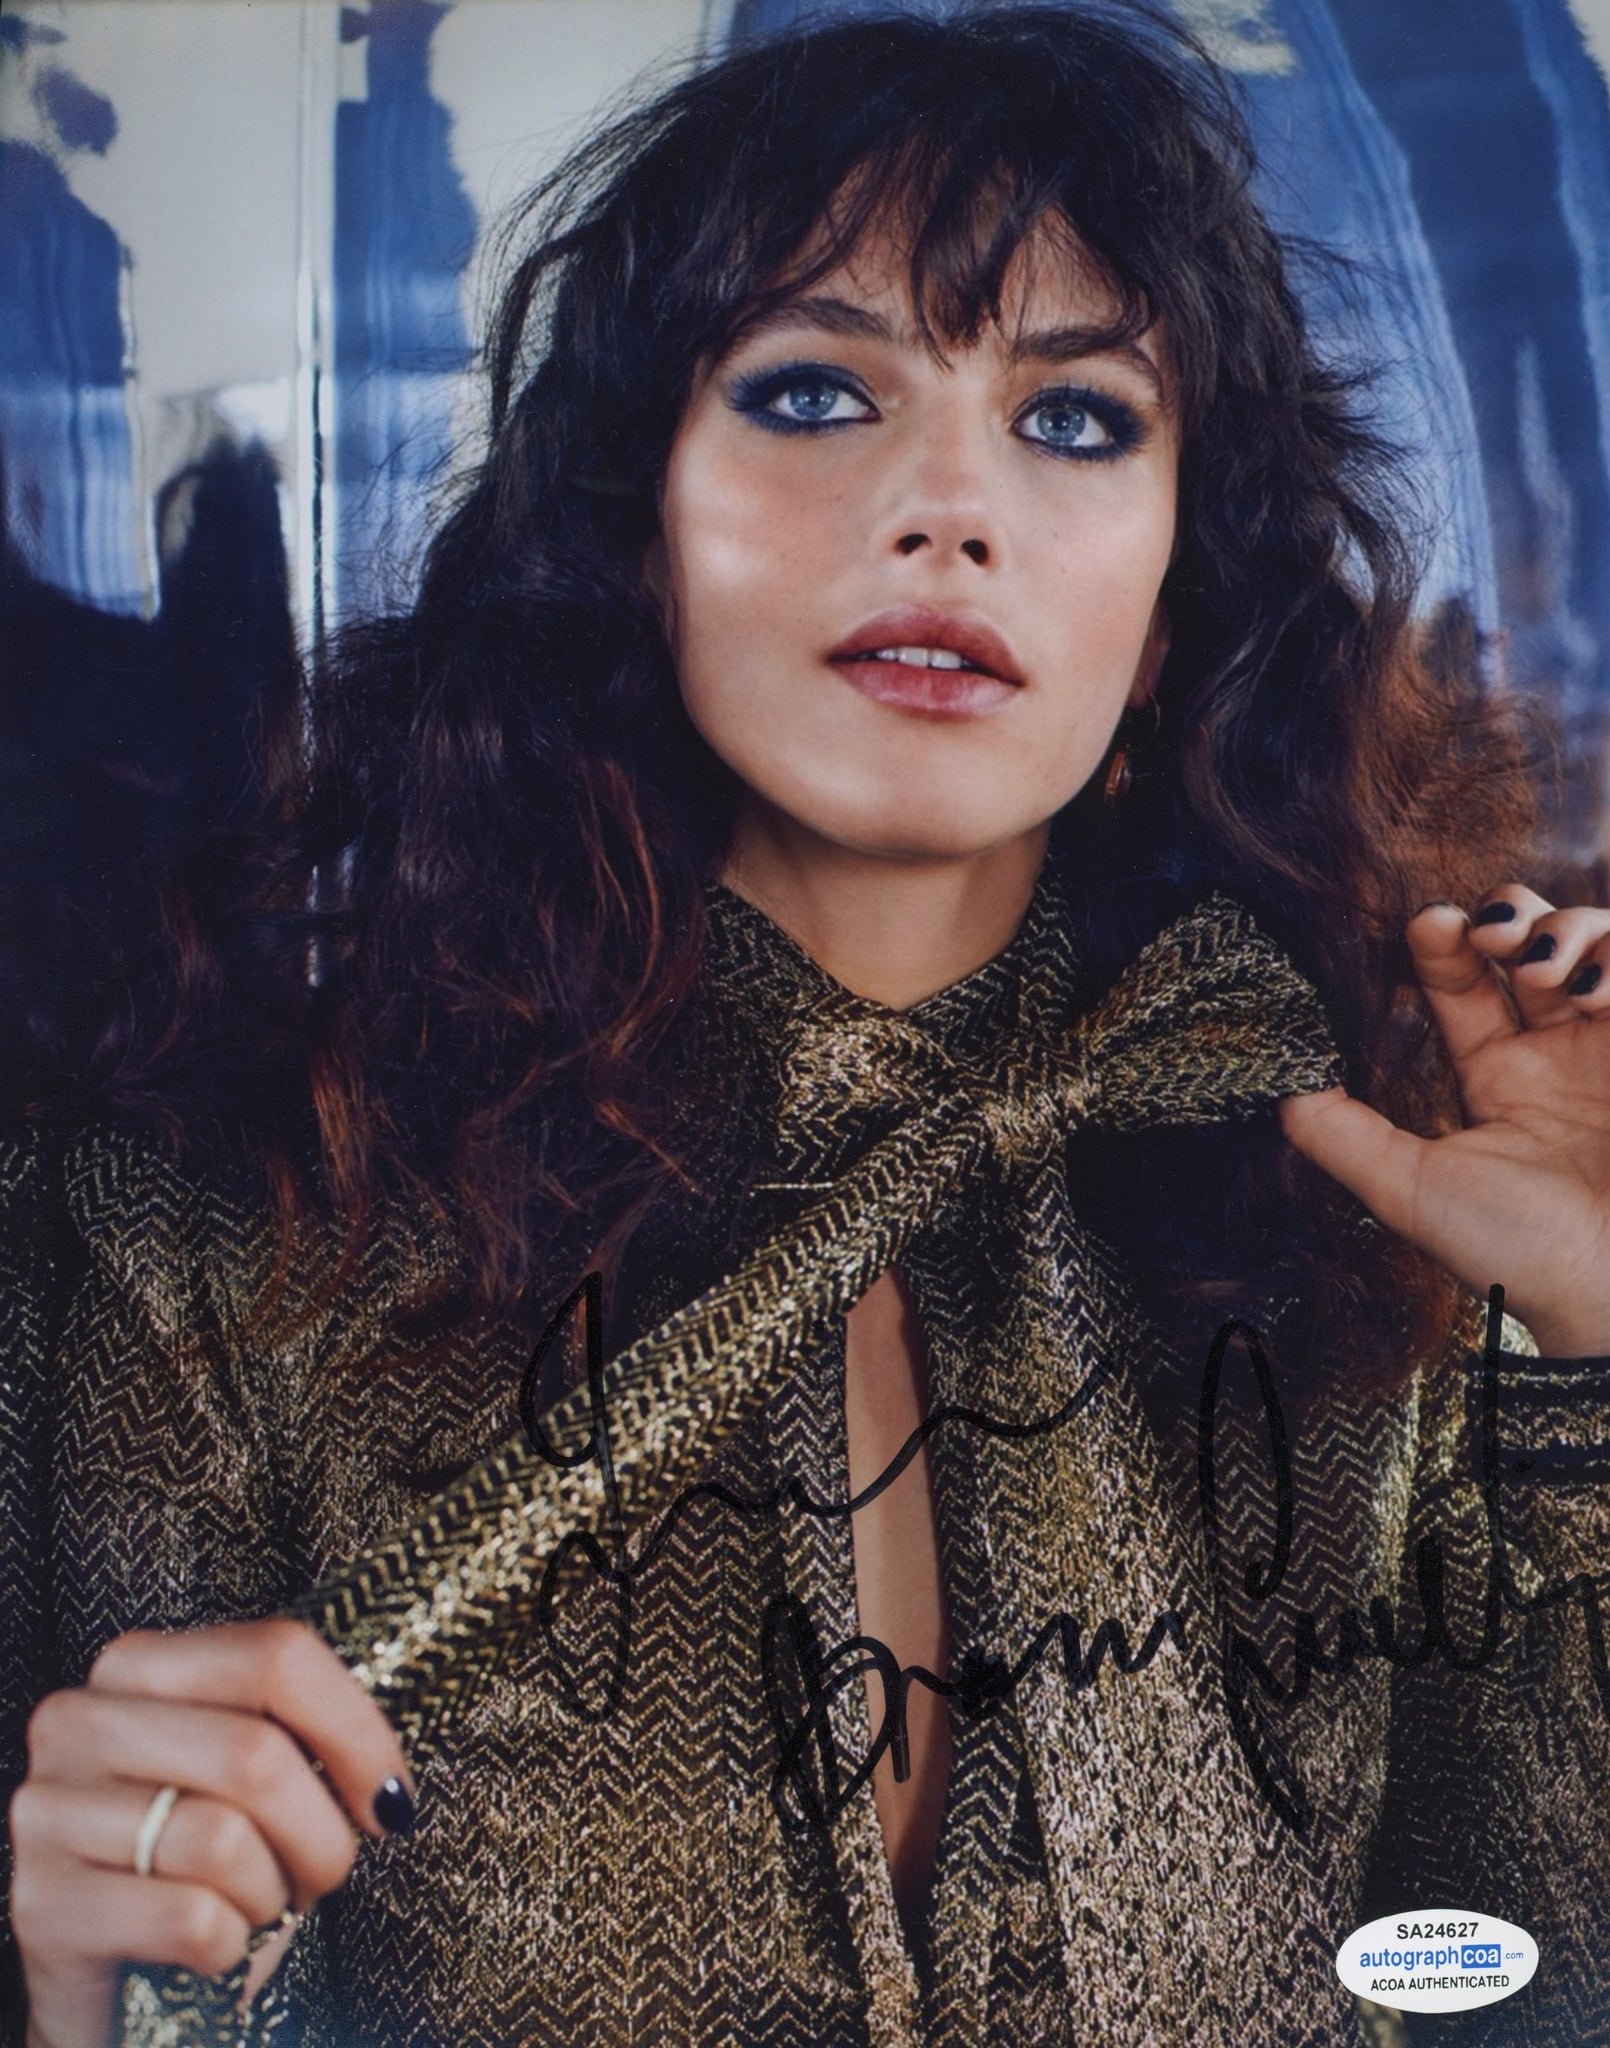 Jessica Brown Findlay Sexy Signed Autograph 8x10 Photo ACOA  #5 - Outlaw Hobbies Authentic Autographs